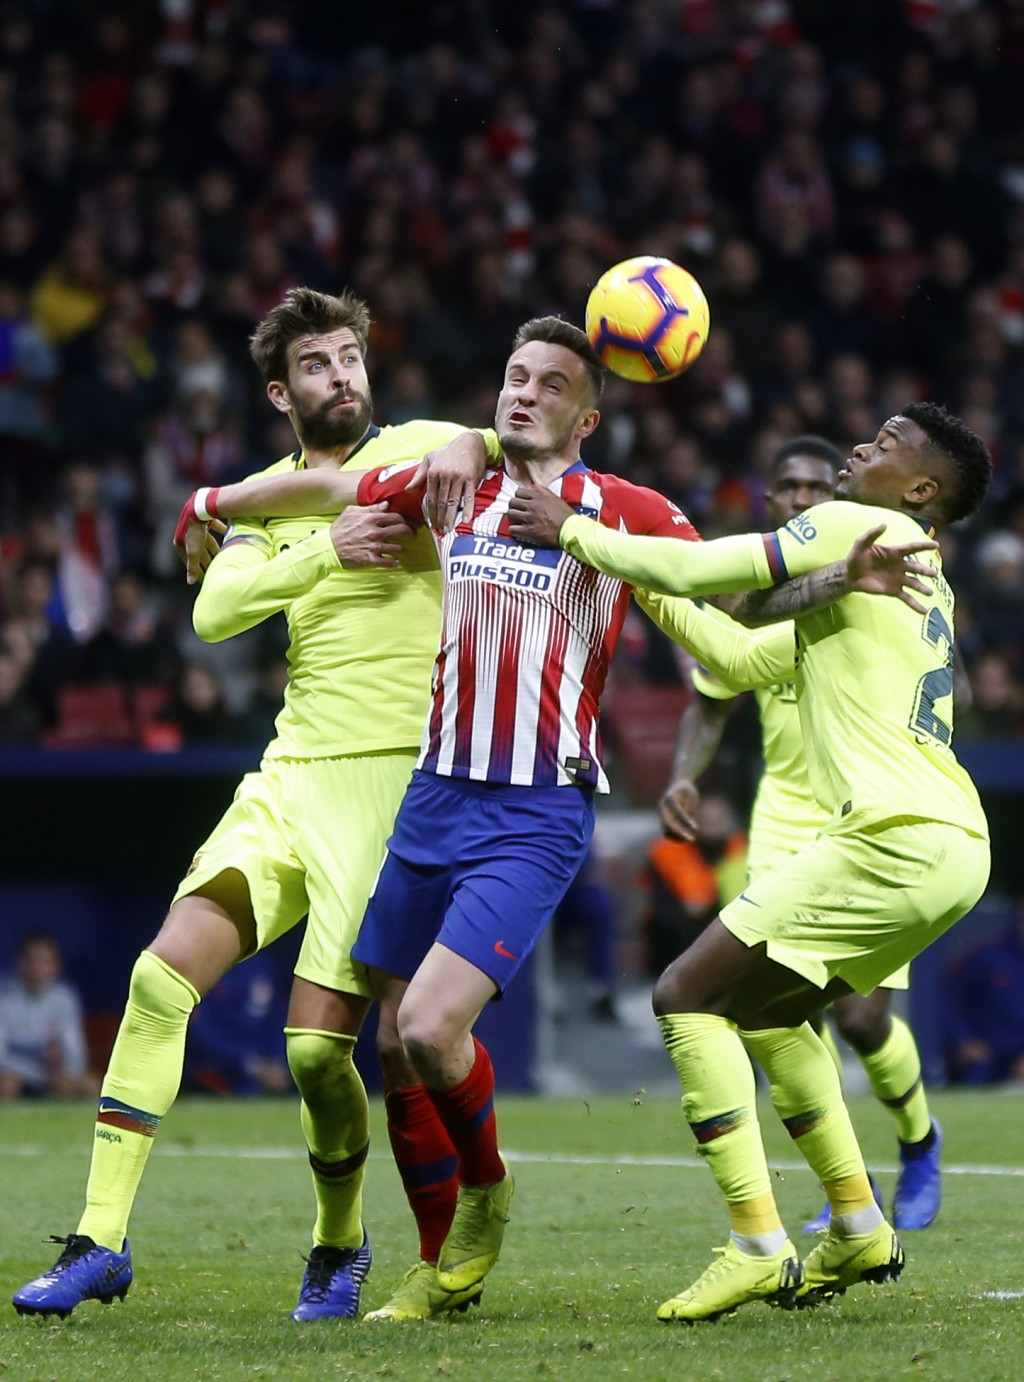 Atletico's Saul Niguez fights for the ball with Barcelona's Gerard Pique and Nelson Semedo, right, during a Spanish La Liga soccer match between Atlet...